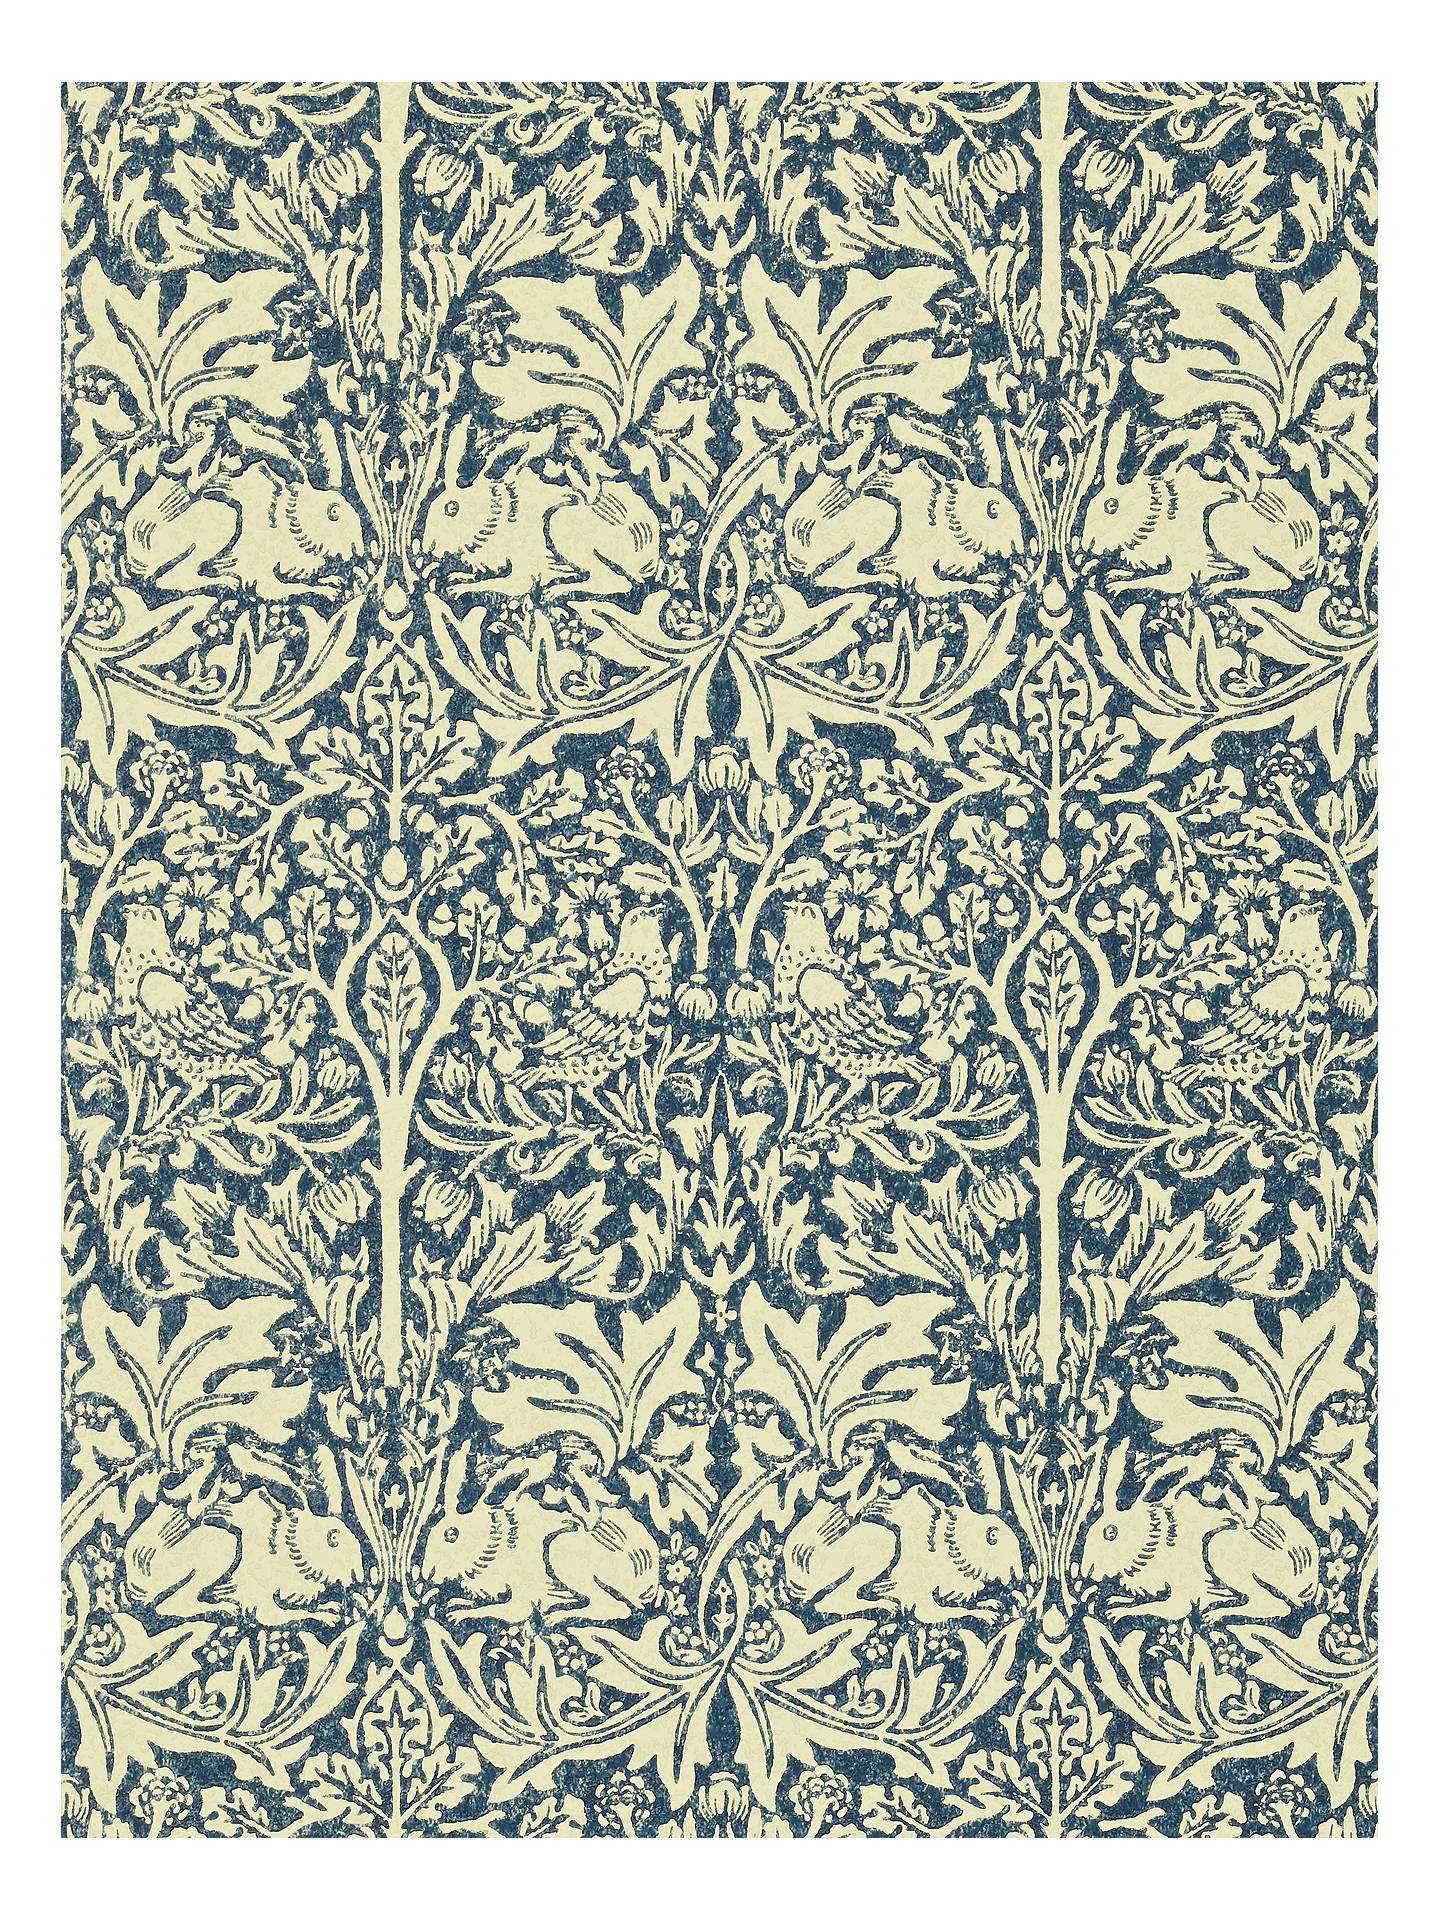 Morris Co Brer Rabbit Wallpaper Indigo Vellum Dmcw210411